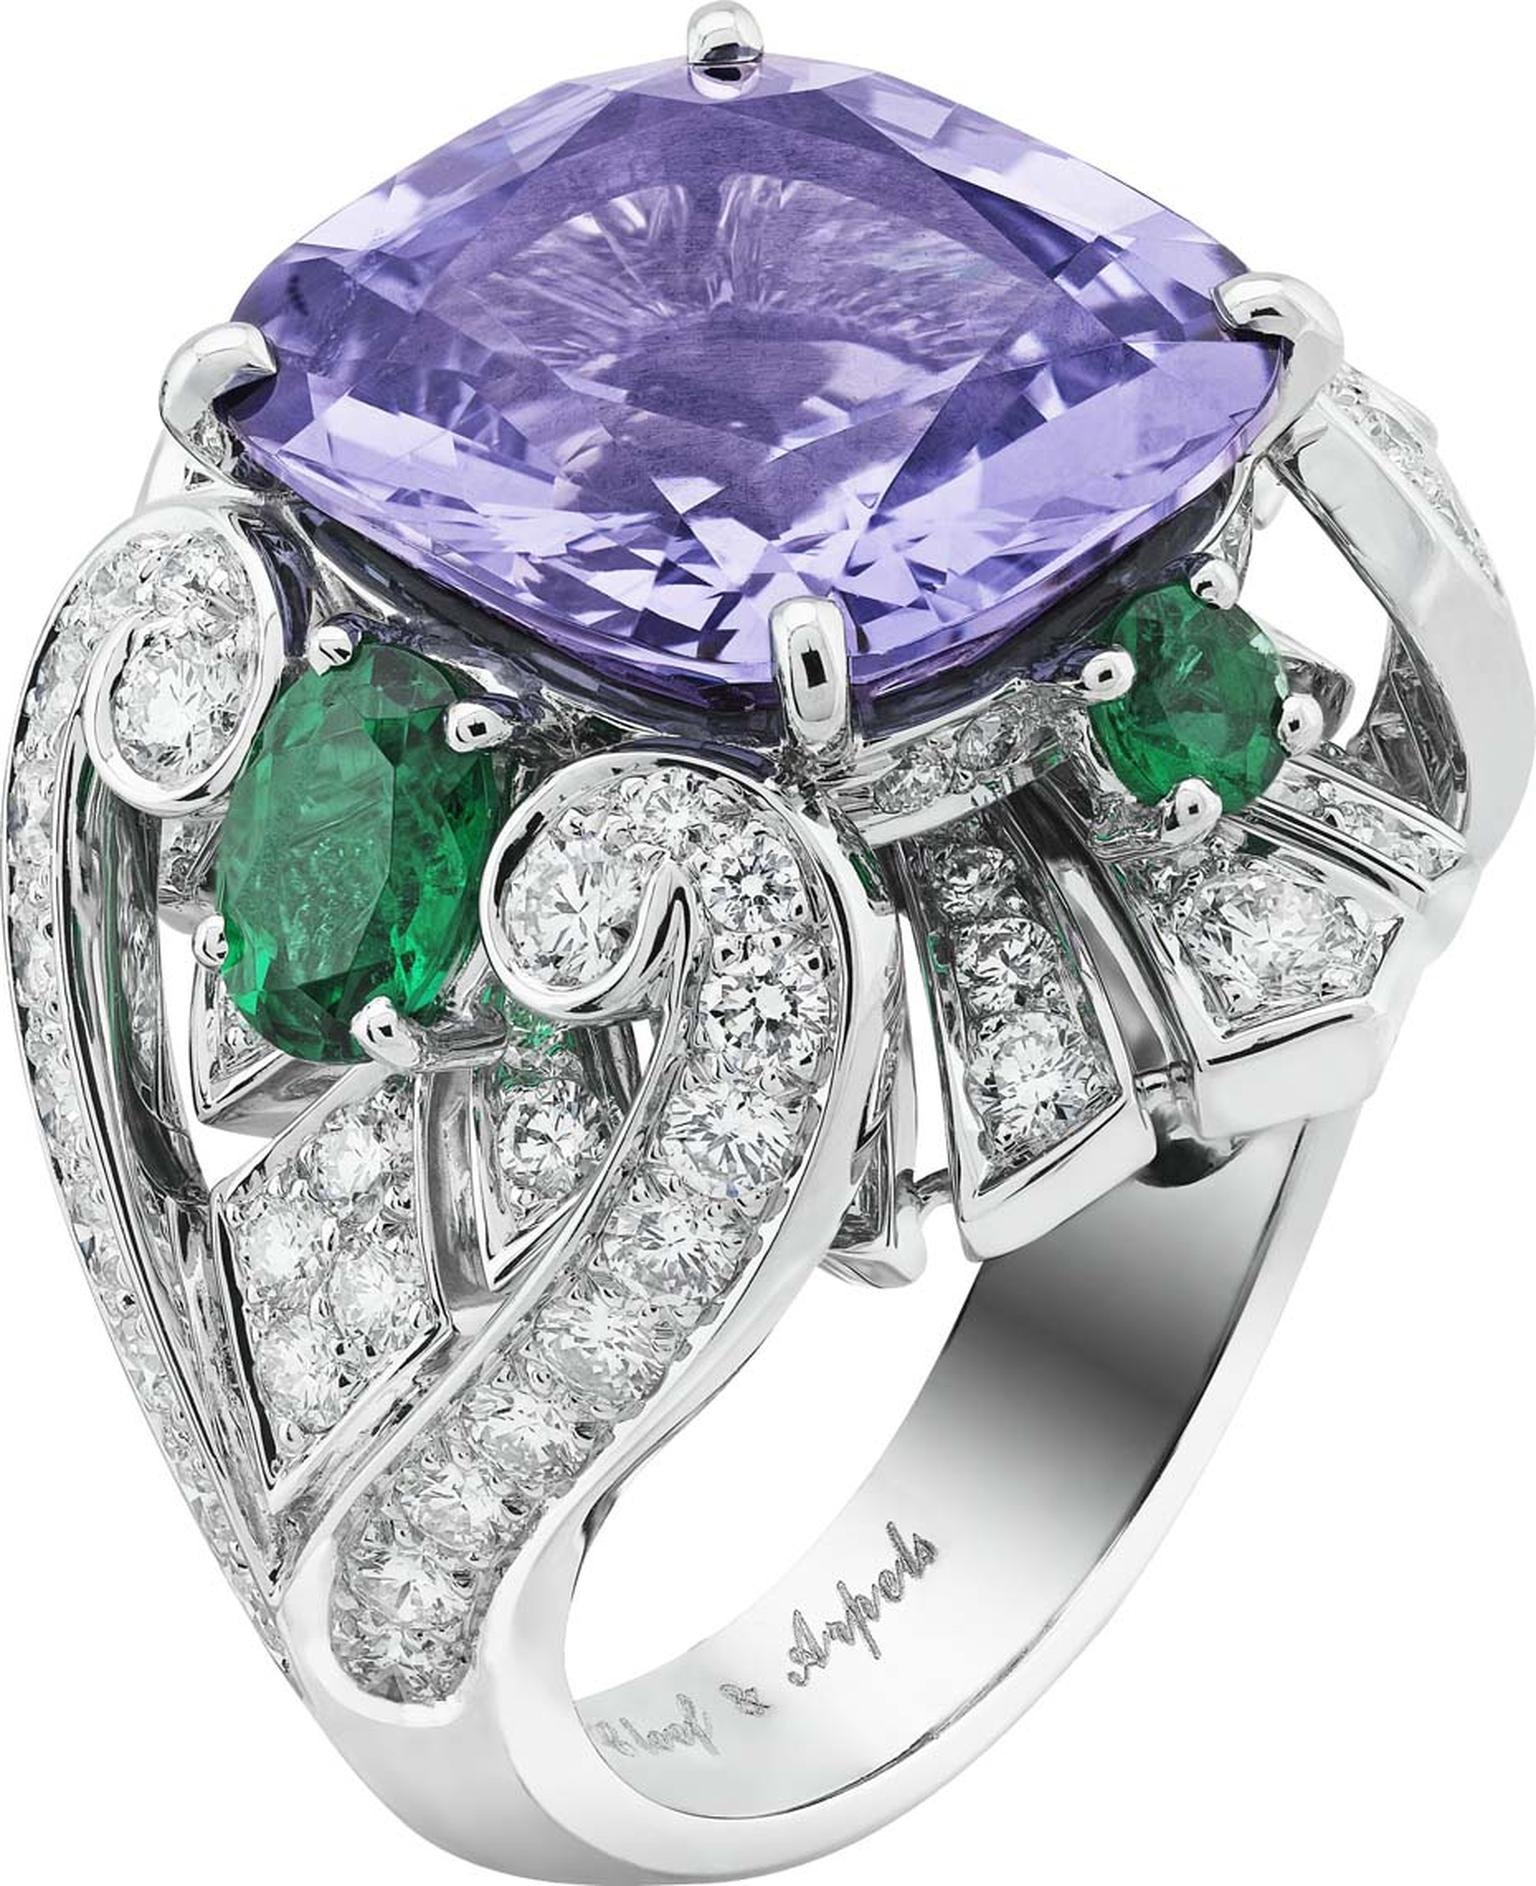 Van Cleef & Arpels Peau d'Ane white gold The Enchanted Forest collection Flower Night ring featuring diamonds, oval and round cut emeralds and a central 10.45ct  purple cushion cut spinel.